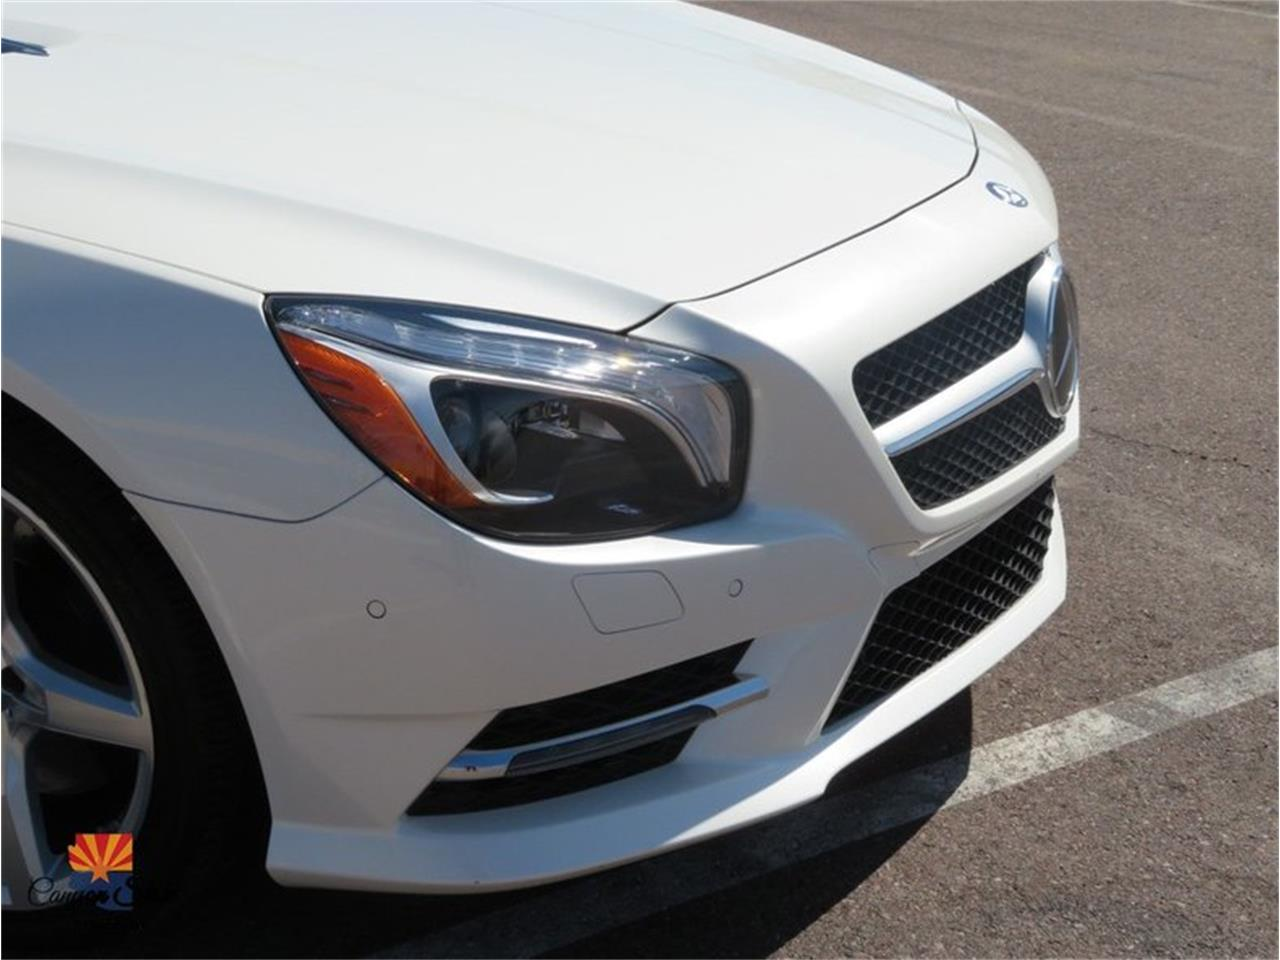 2013 Mercedes-Benz SL-Class for sale in Tempe, AZ – photo 33